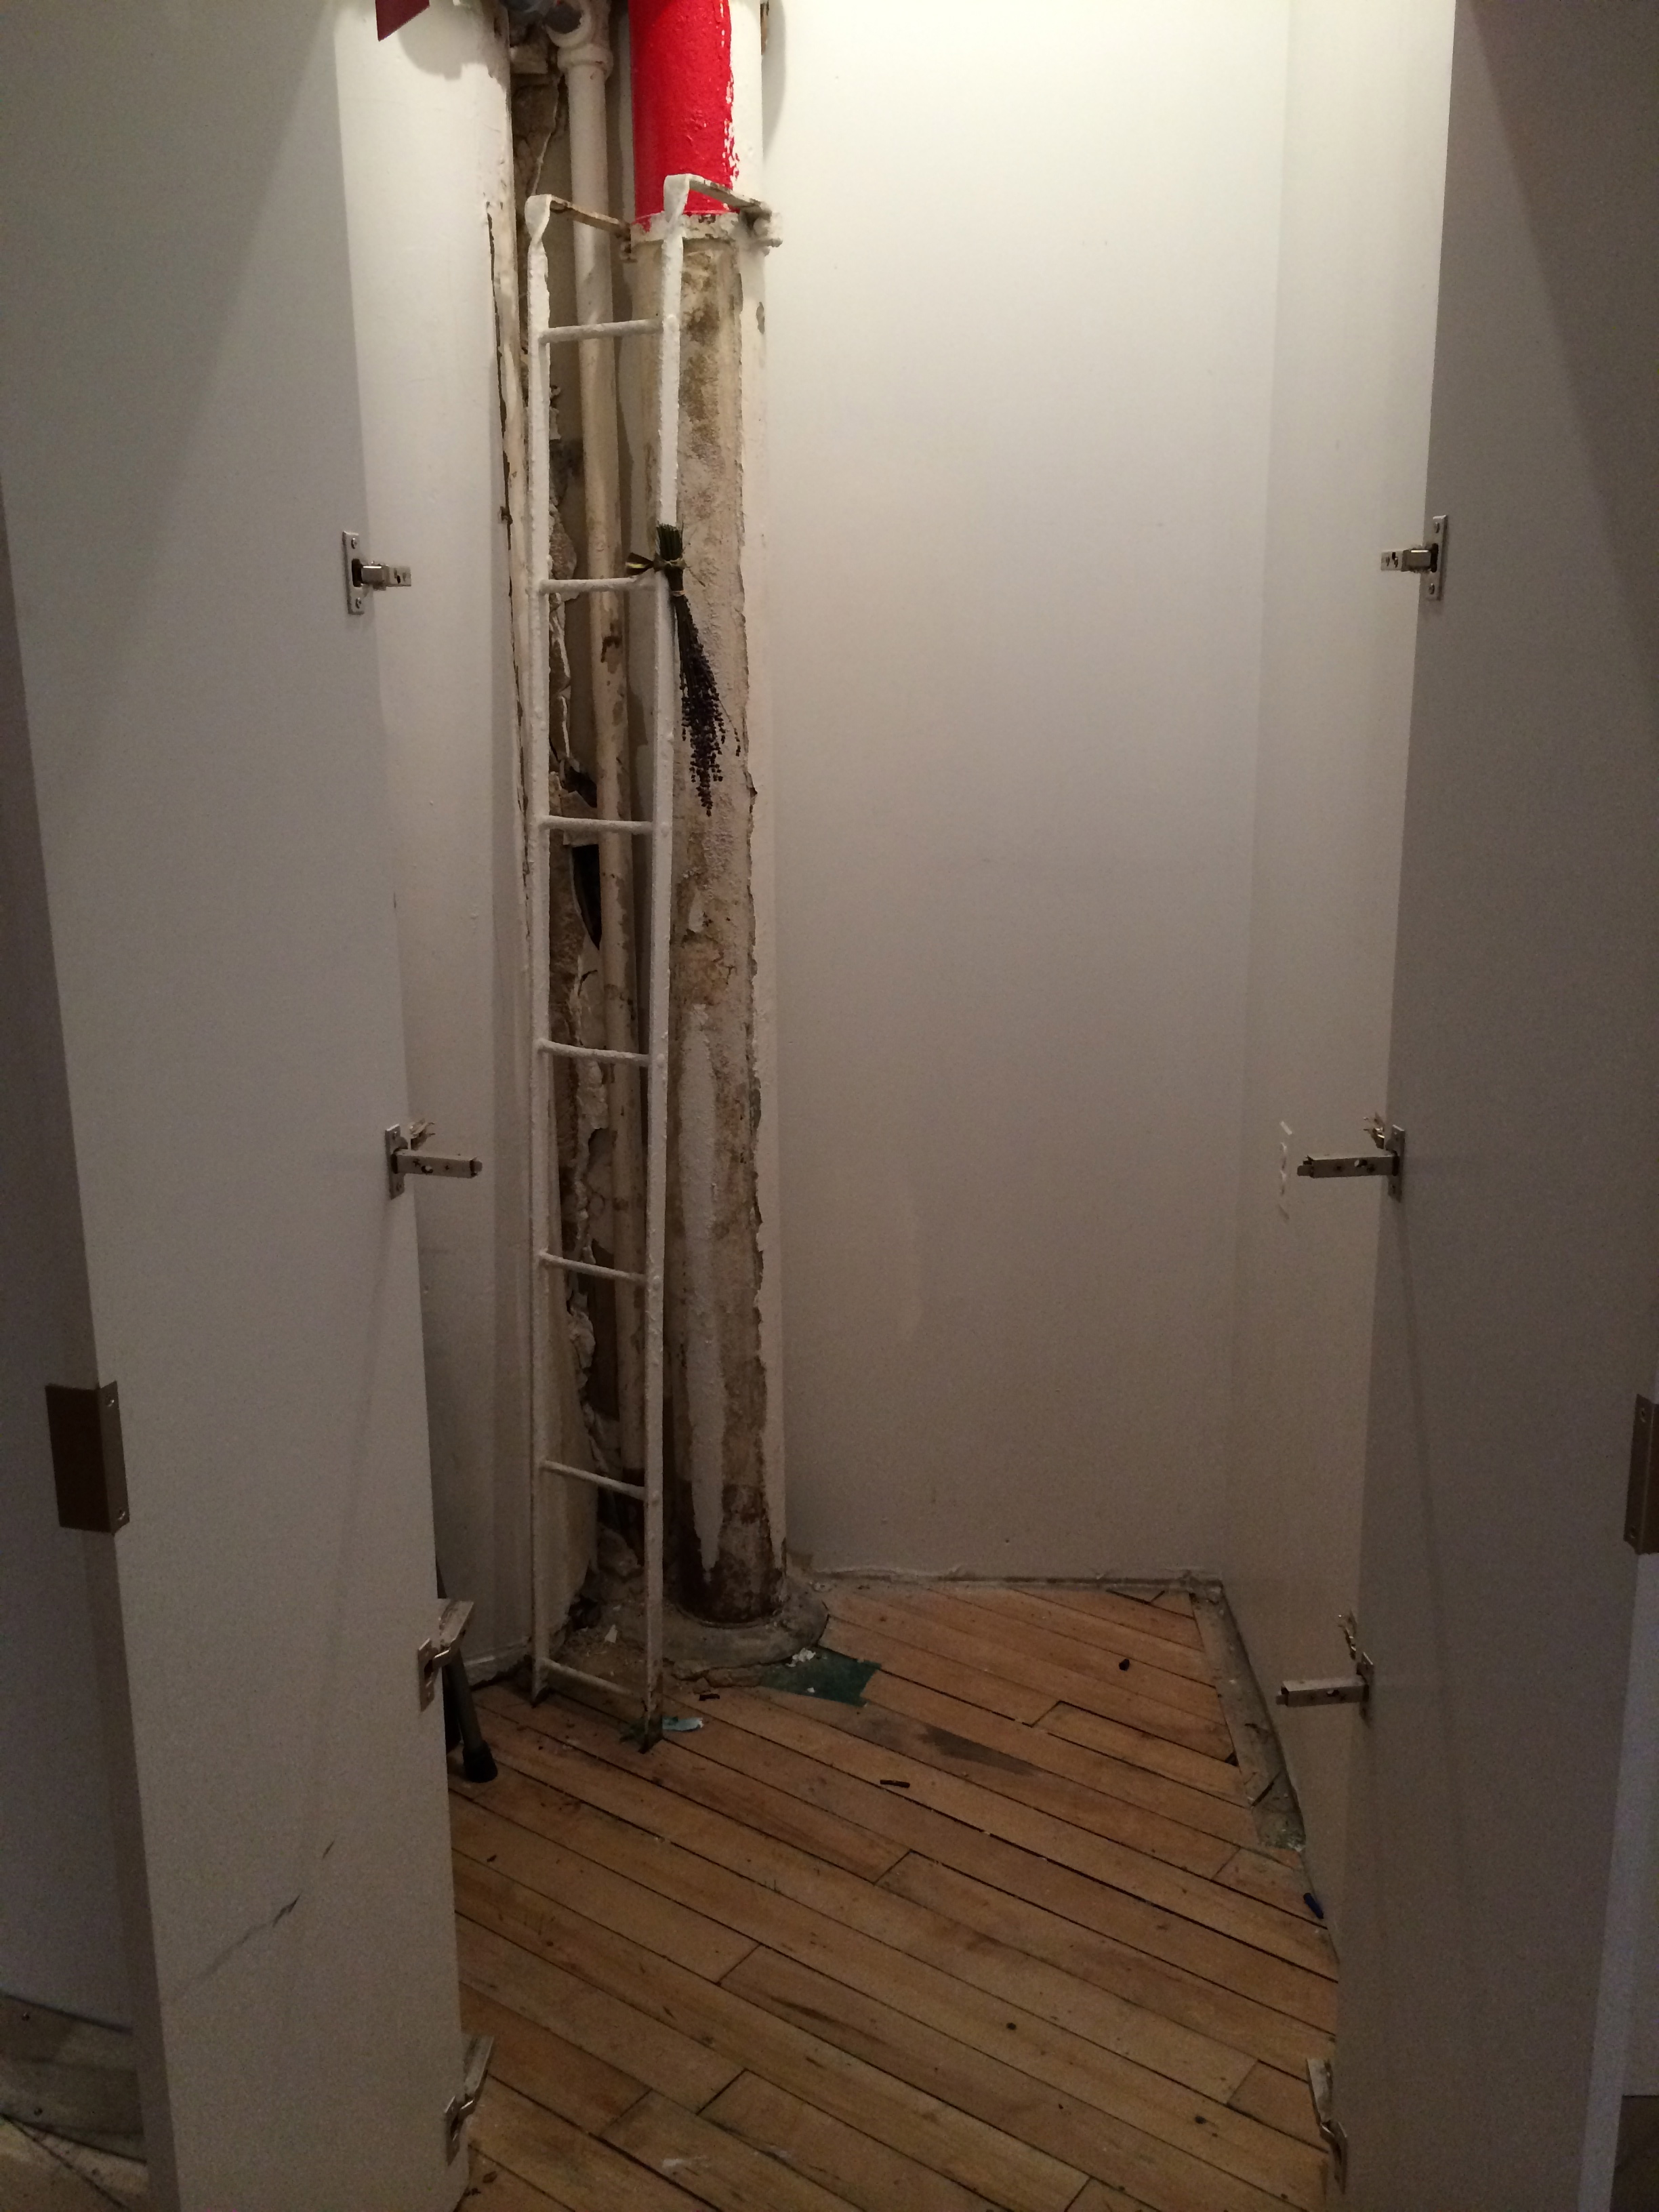 storage closet prior to revamp